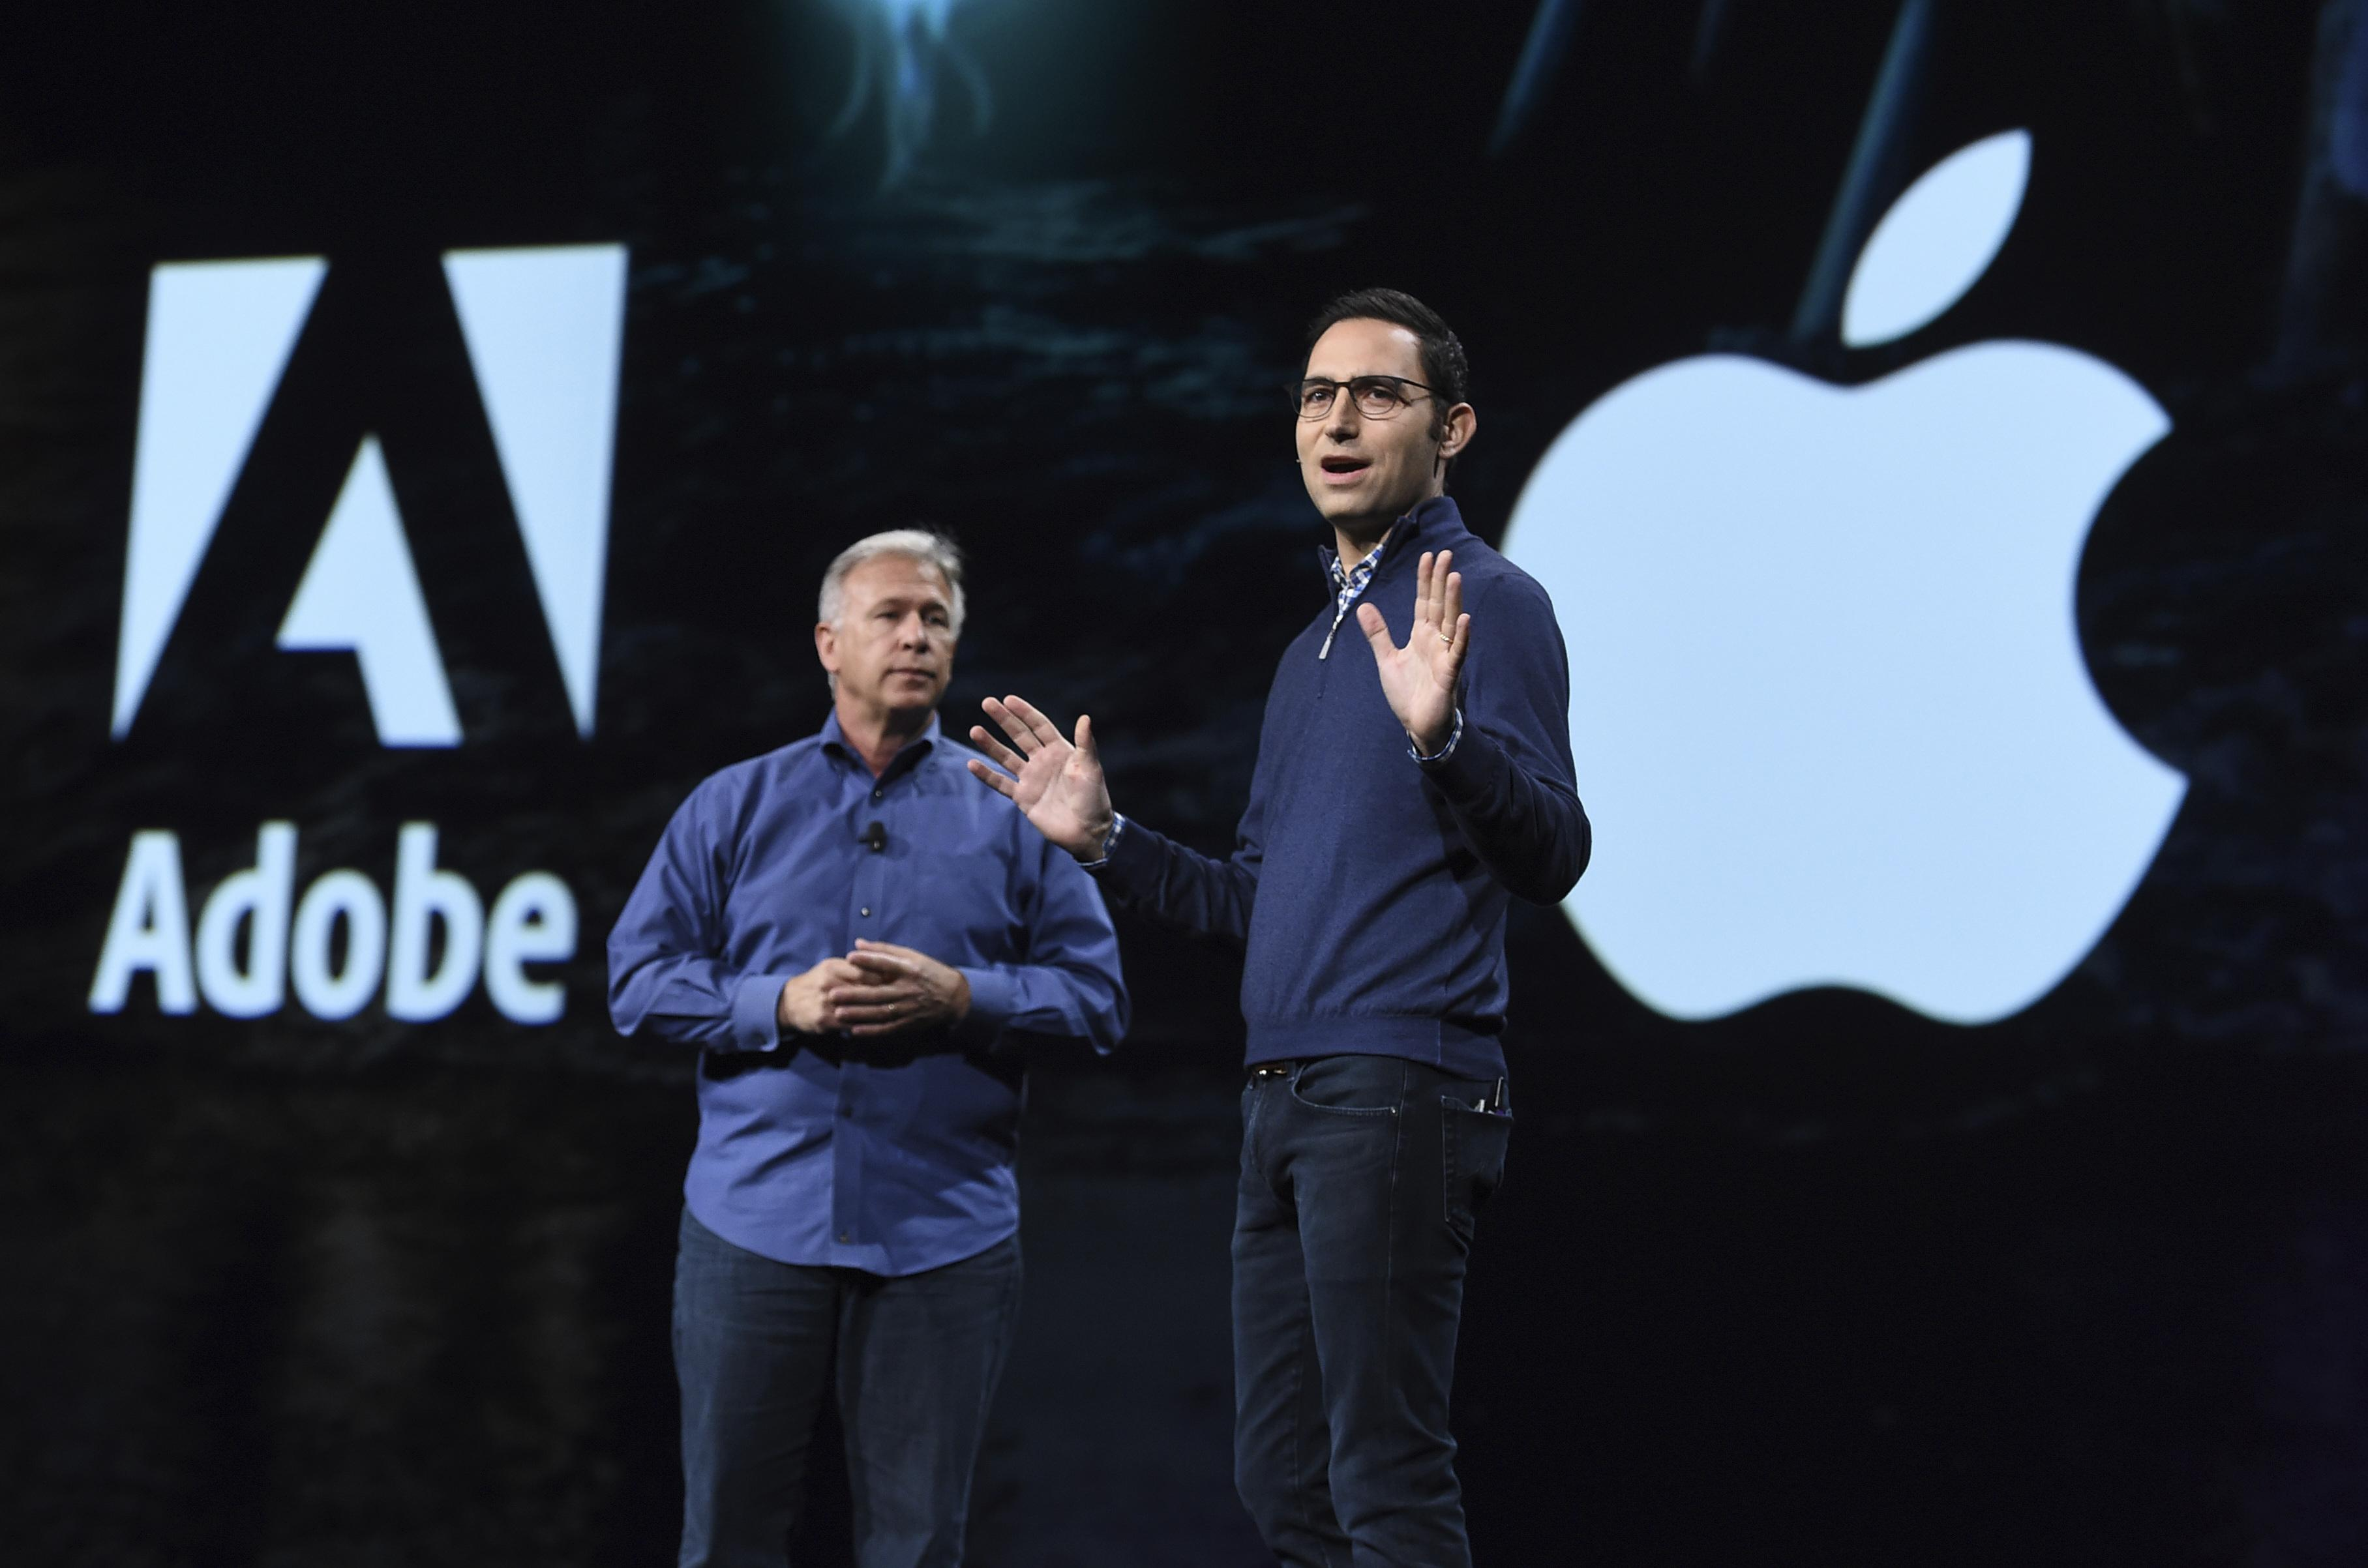 Adobe Photoshop is coming to Apple's iPad   The Spokesman-Review